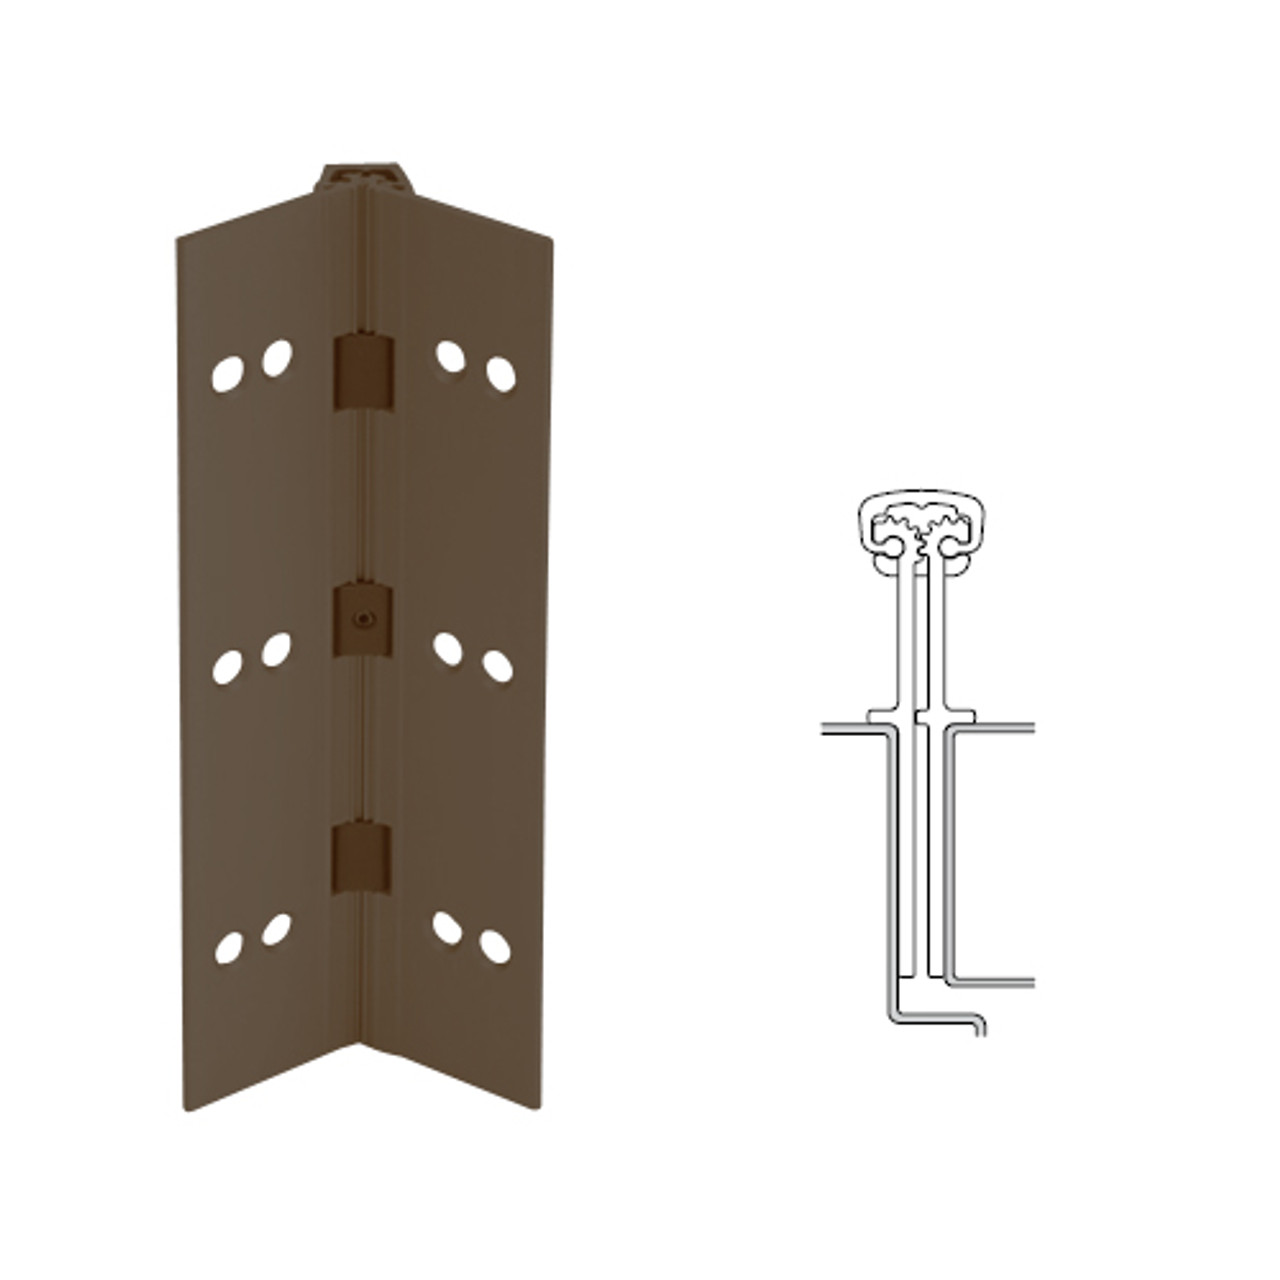 040XY-313AN-120-SECHM IVES Full Mortise Continuous Geared Hinges with Security Screws - Hex Pin Drive in Dark Bronze Anodized